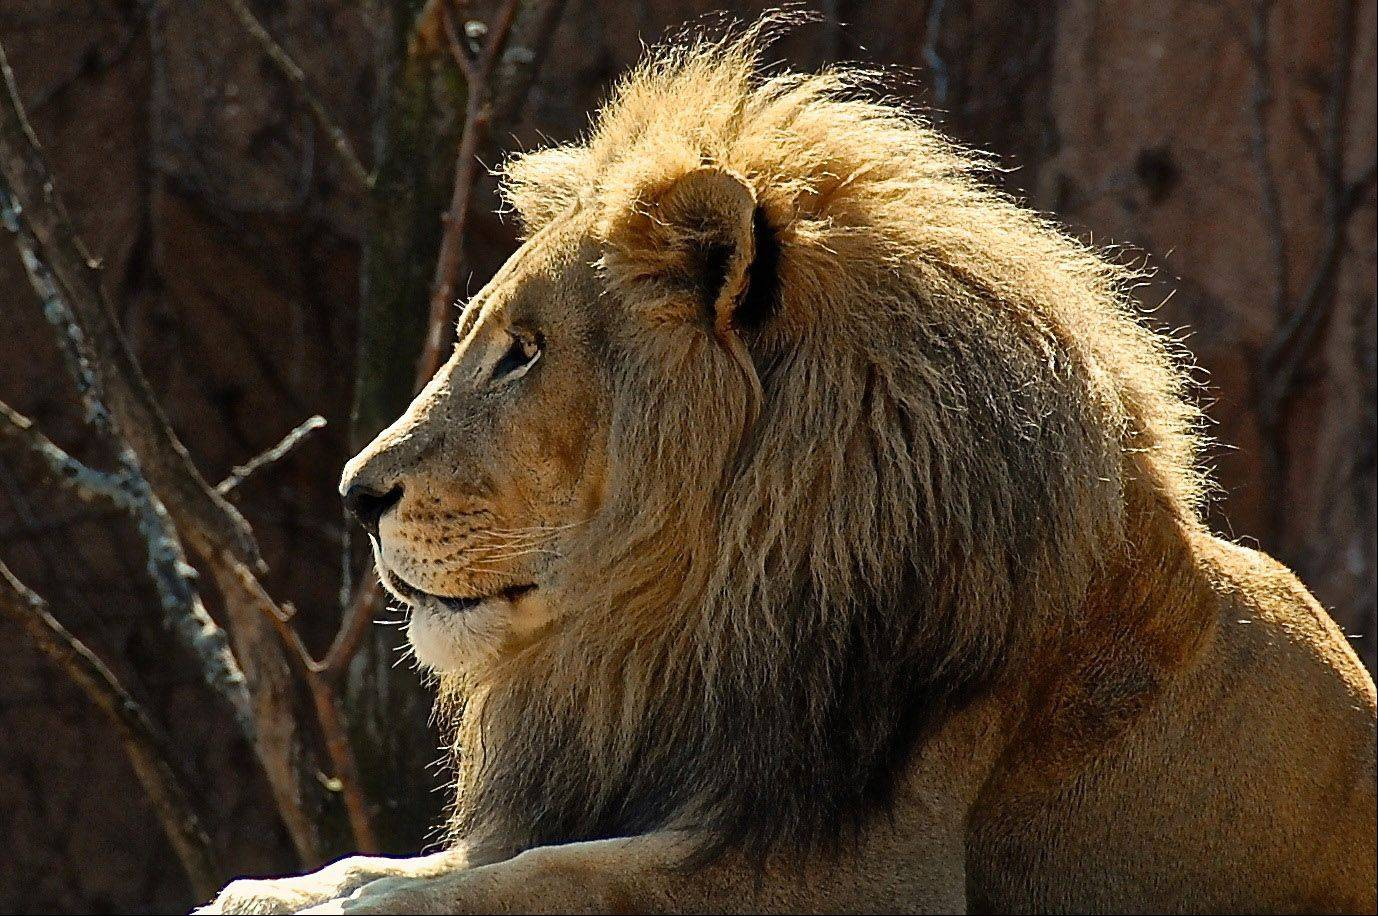 The King of Beasts enjoys lying in the sun at Brookfield Zoo in 2009.